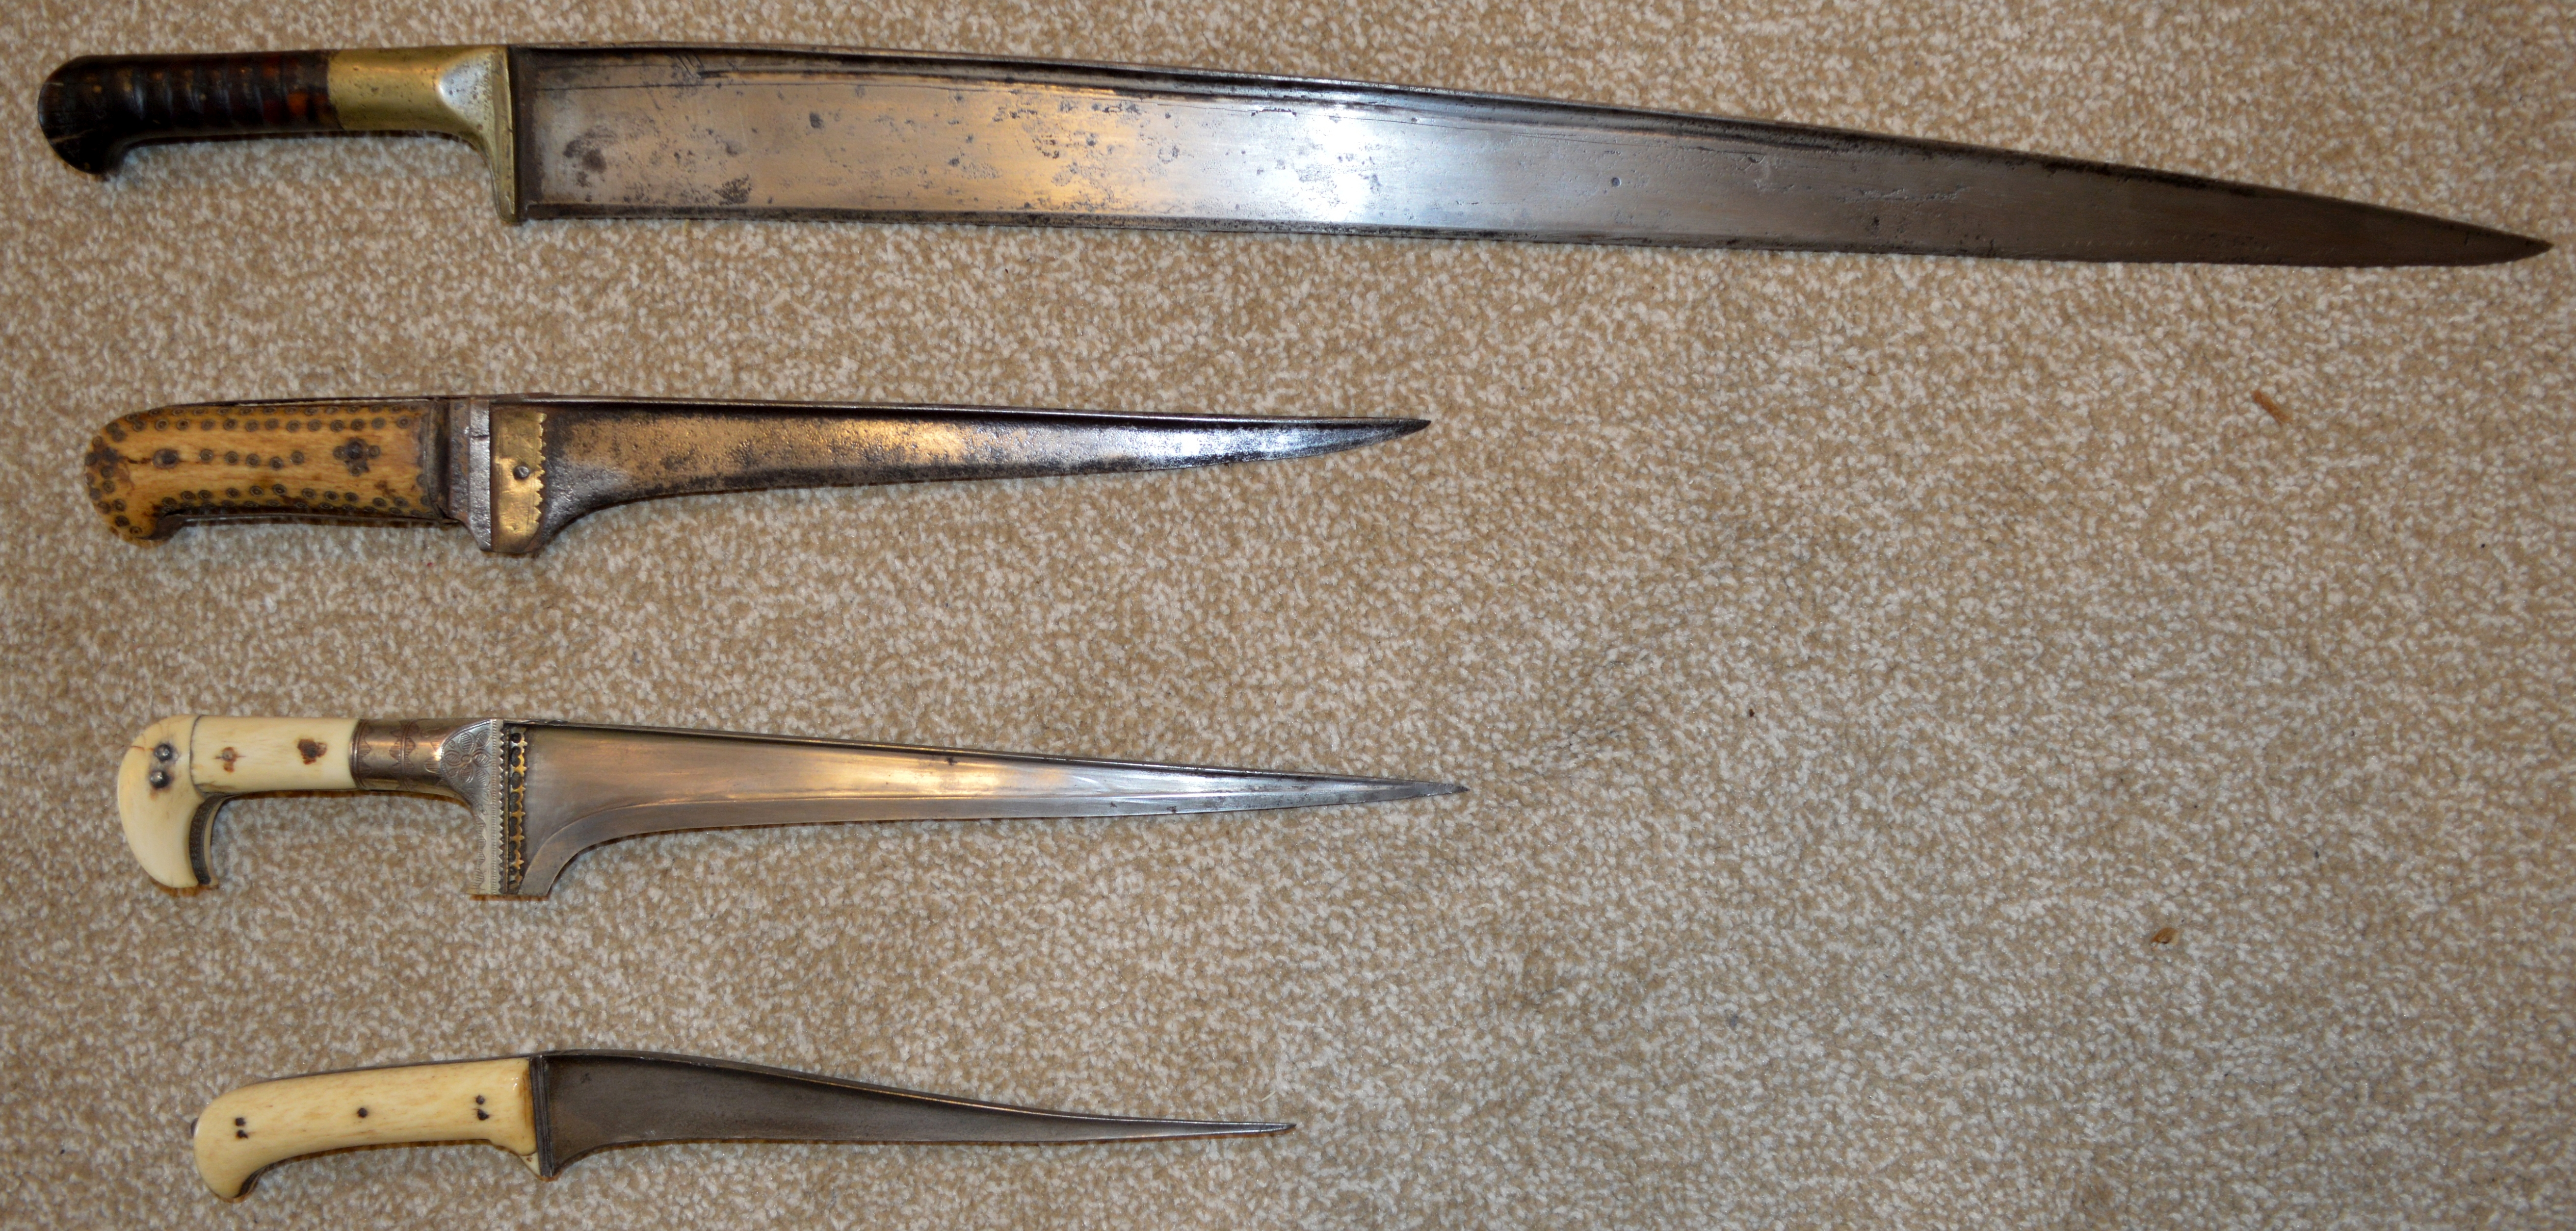 What Is A Khyber Knife?